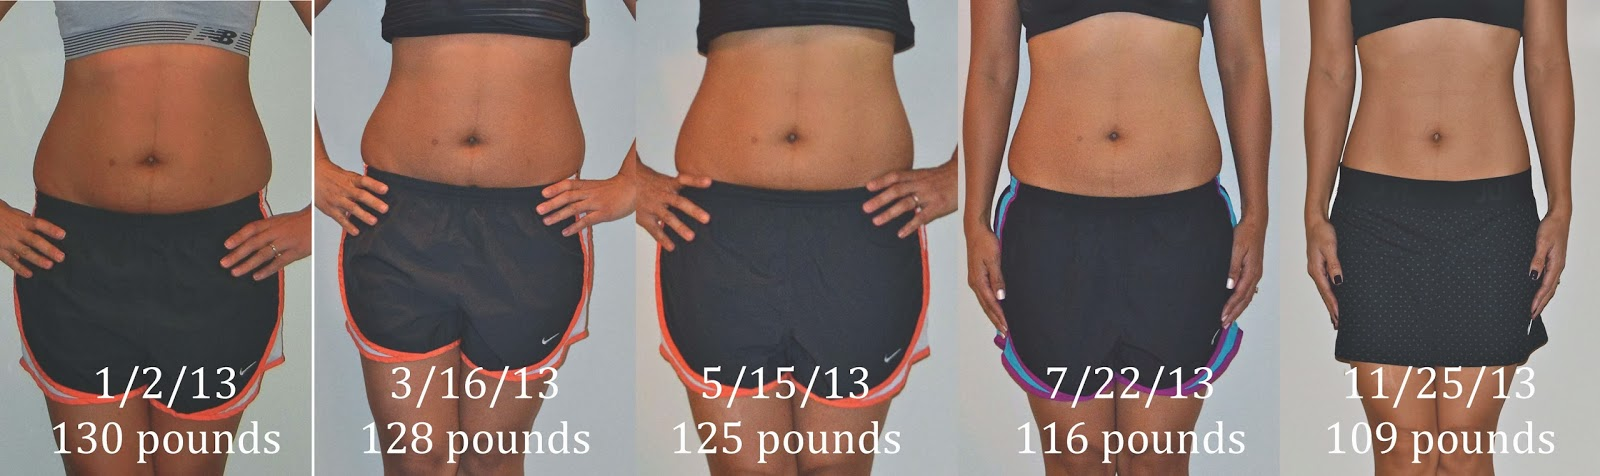 ... months postpartum: 109 pounds ( less than my pre-pregnancy weight